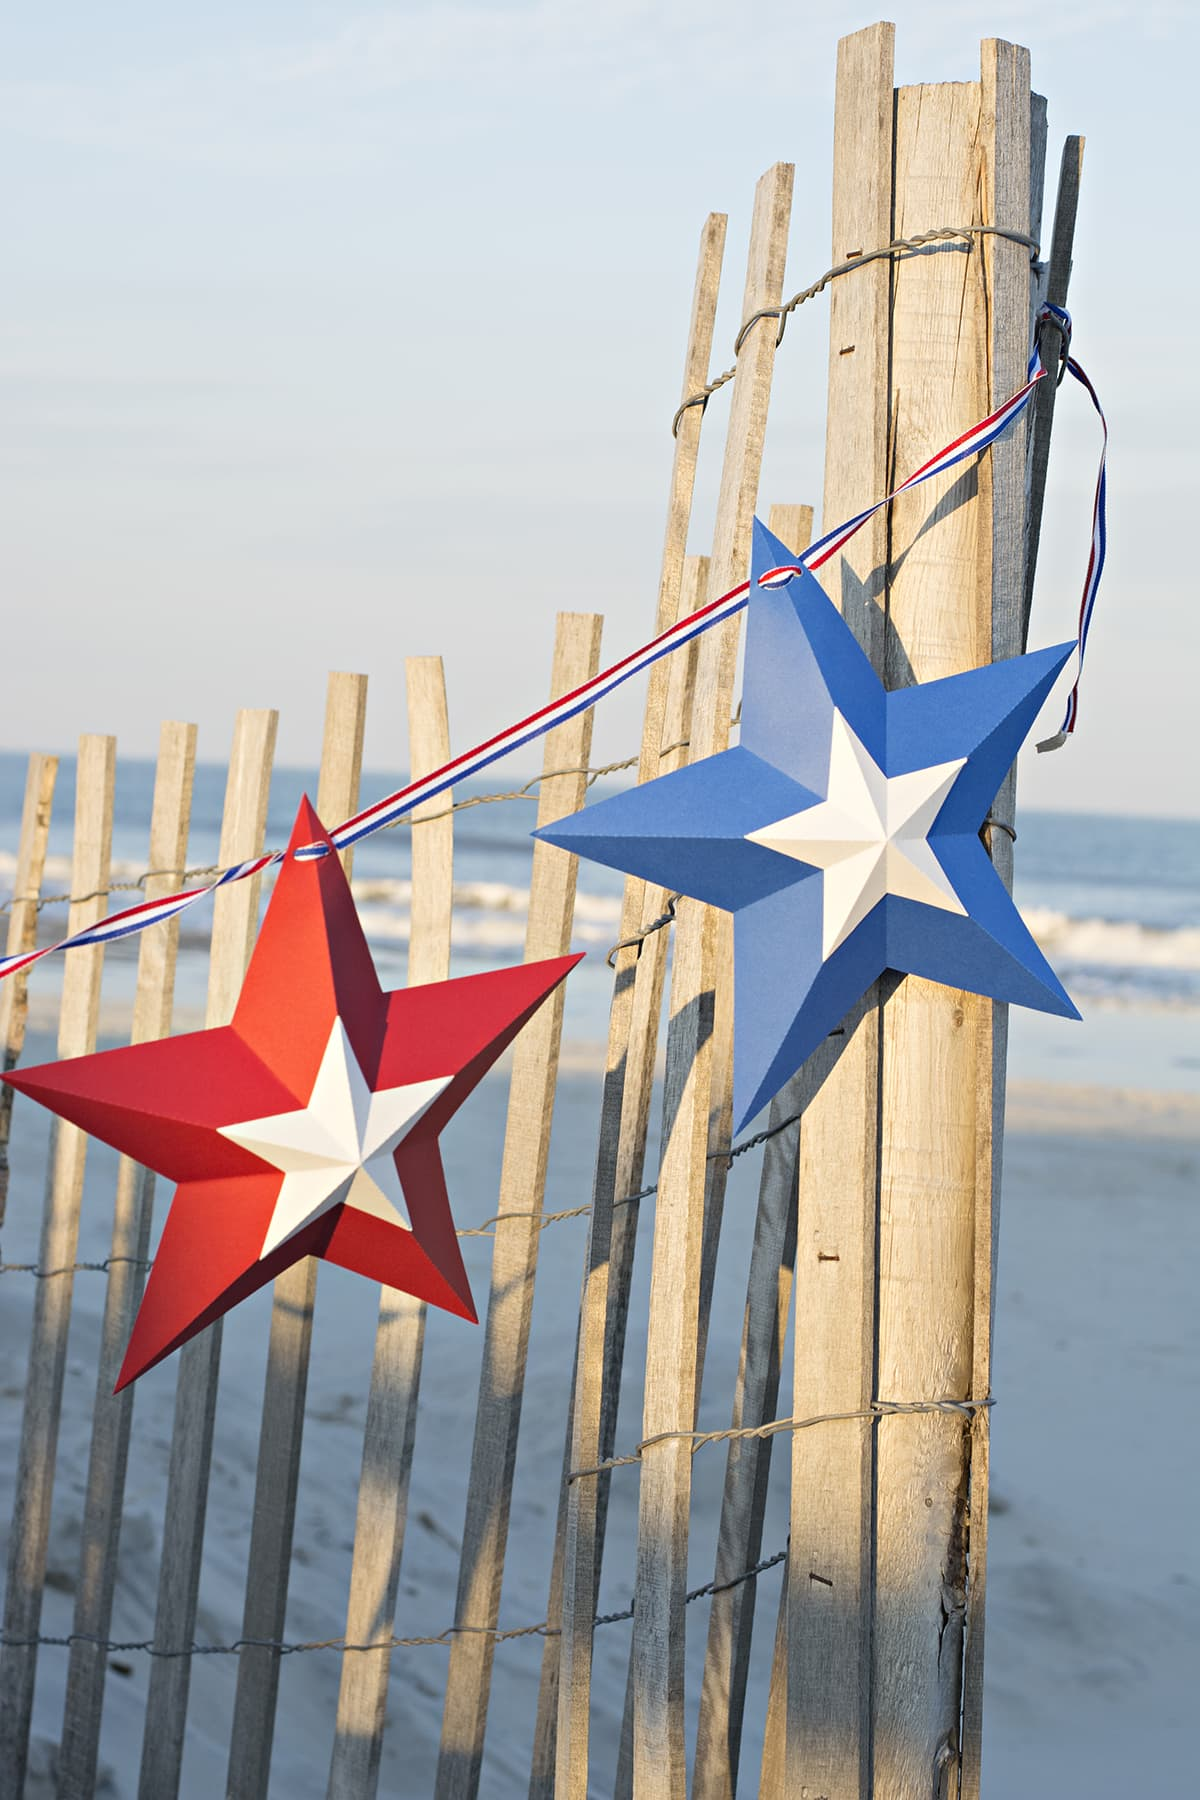 star bunting on the beach